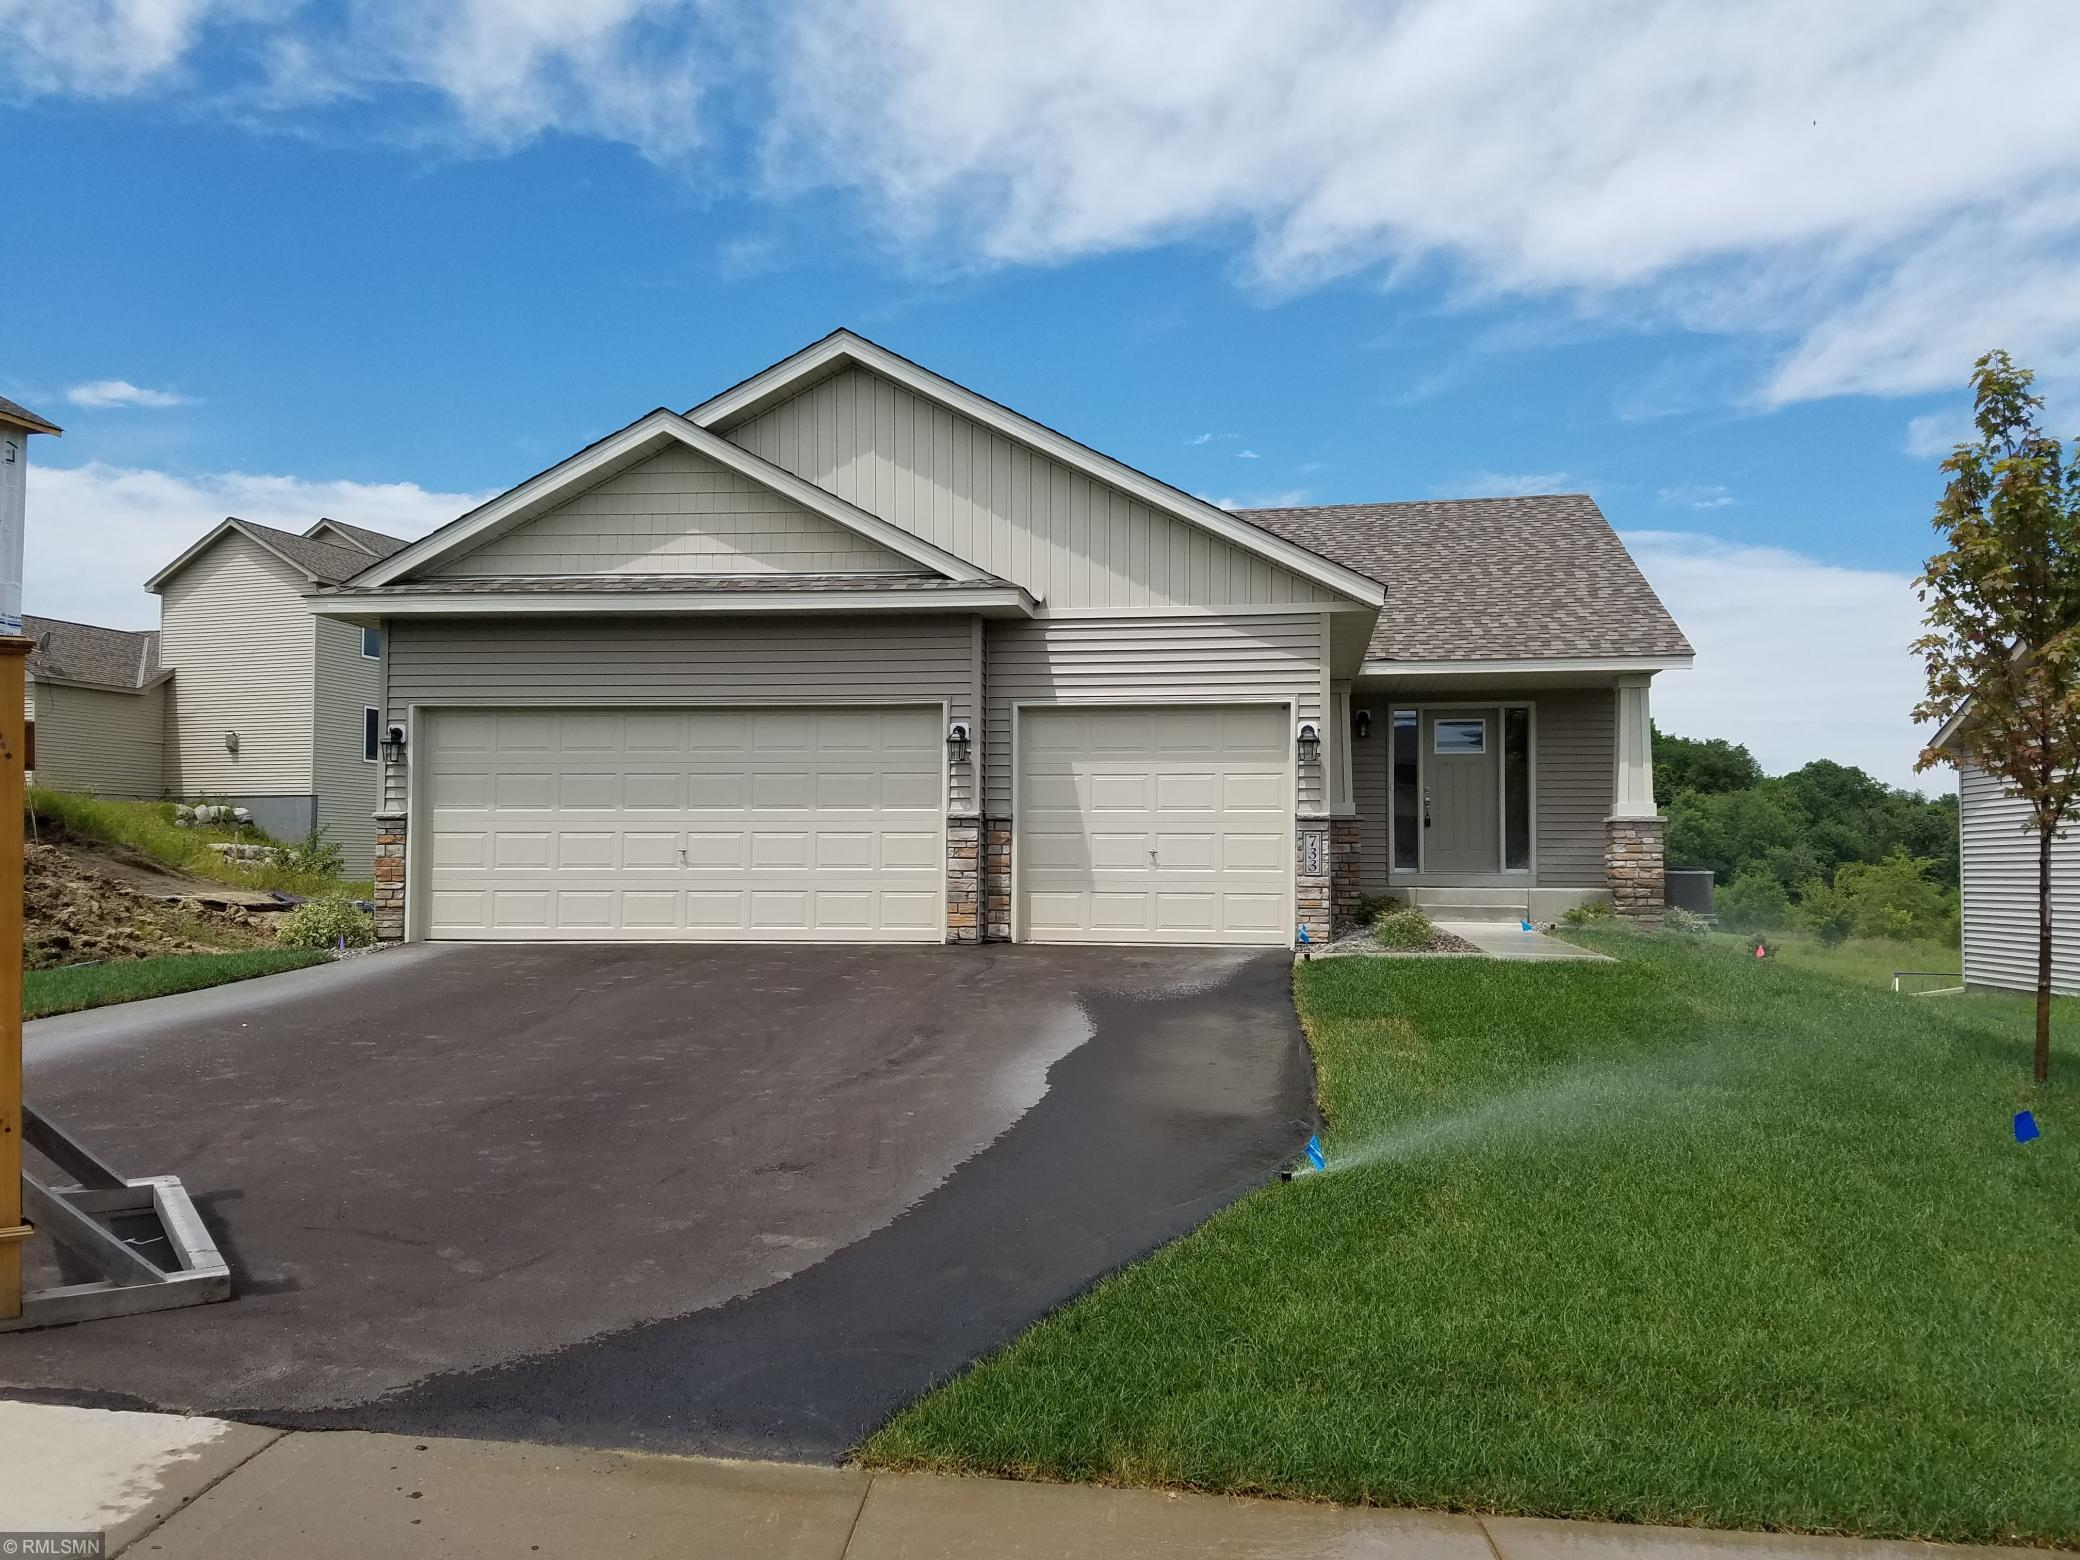 xxx18 Filkins Property Photo - Prescott, WI real estate listing